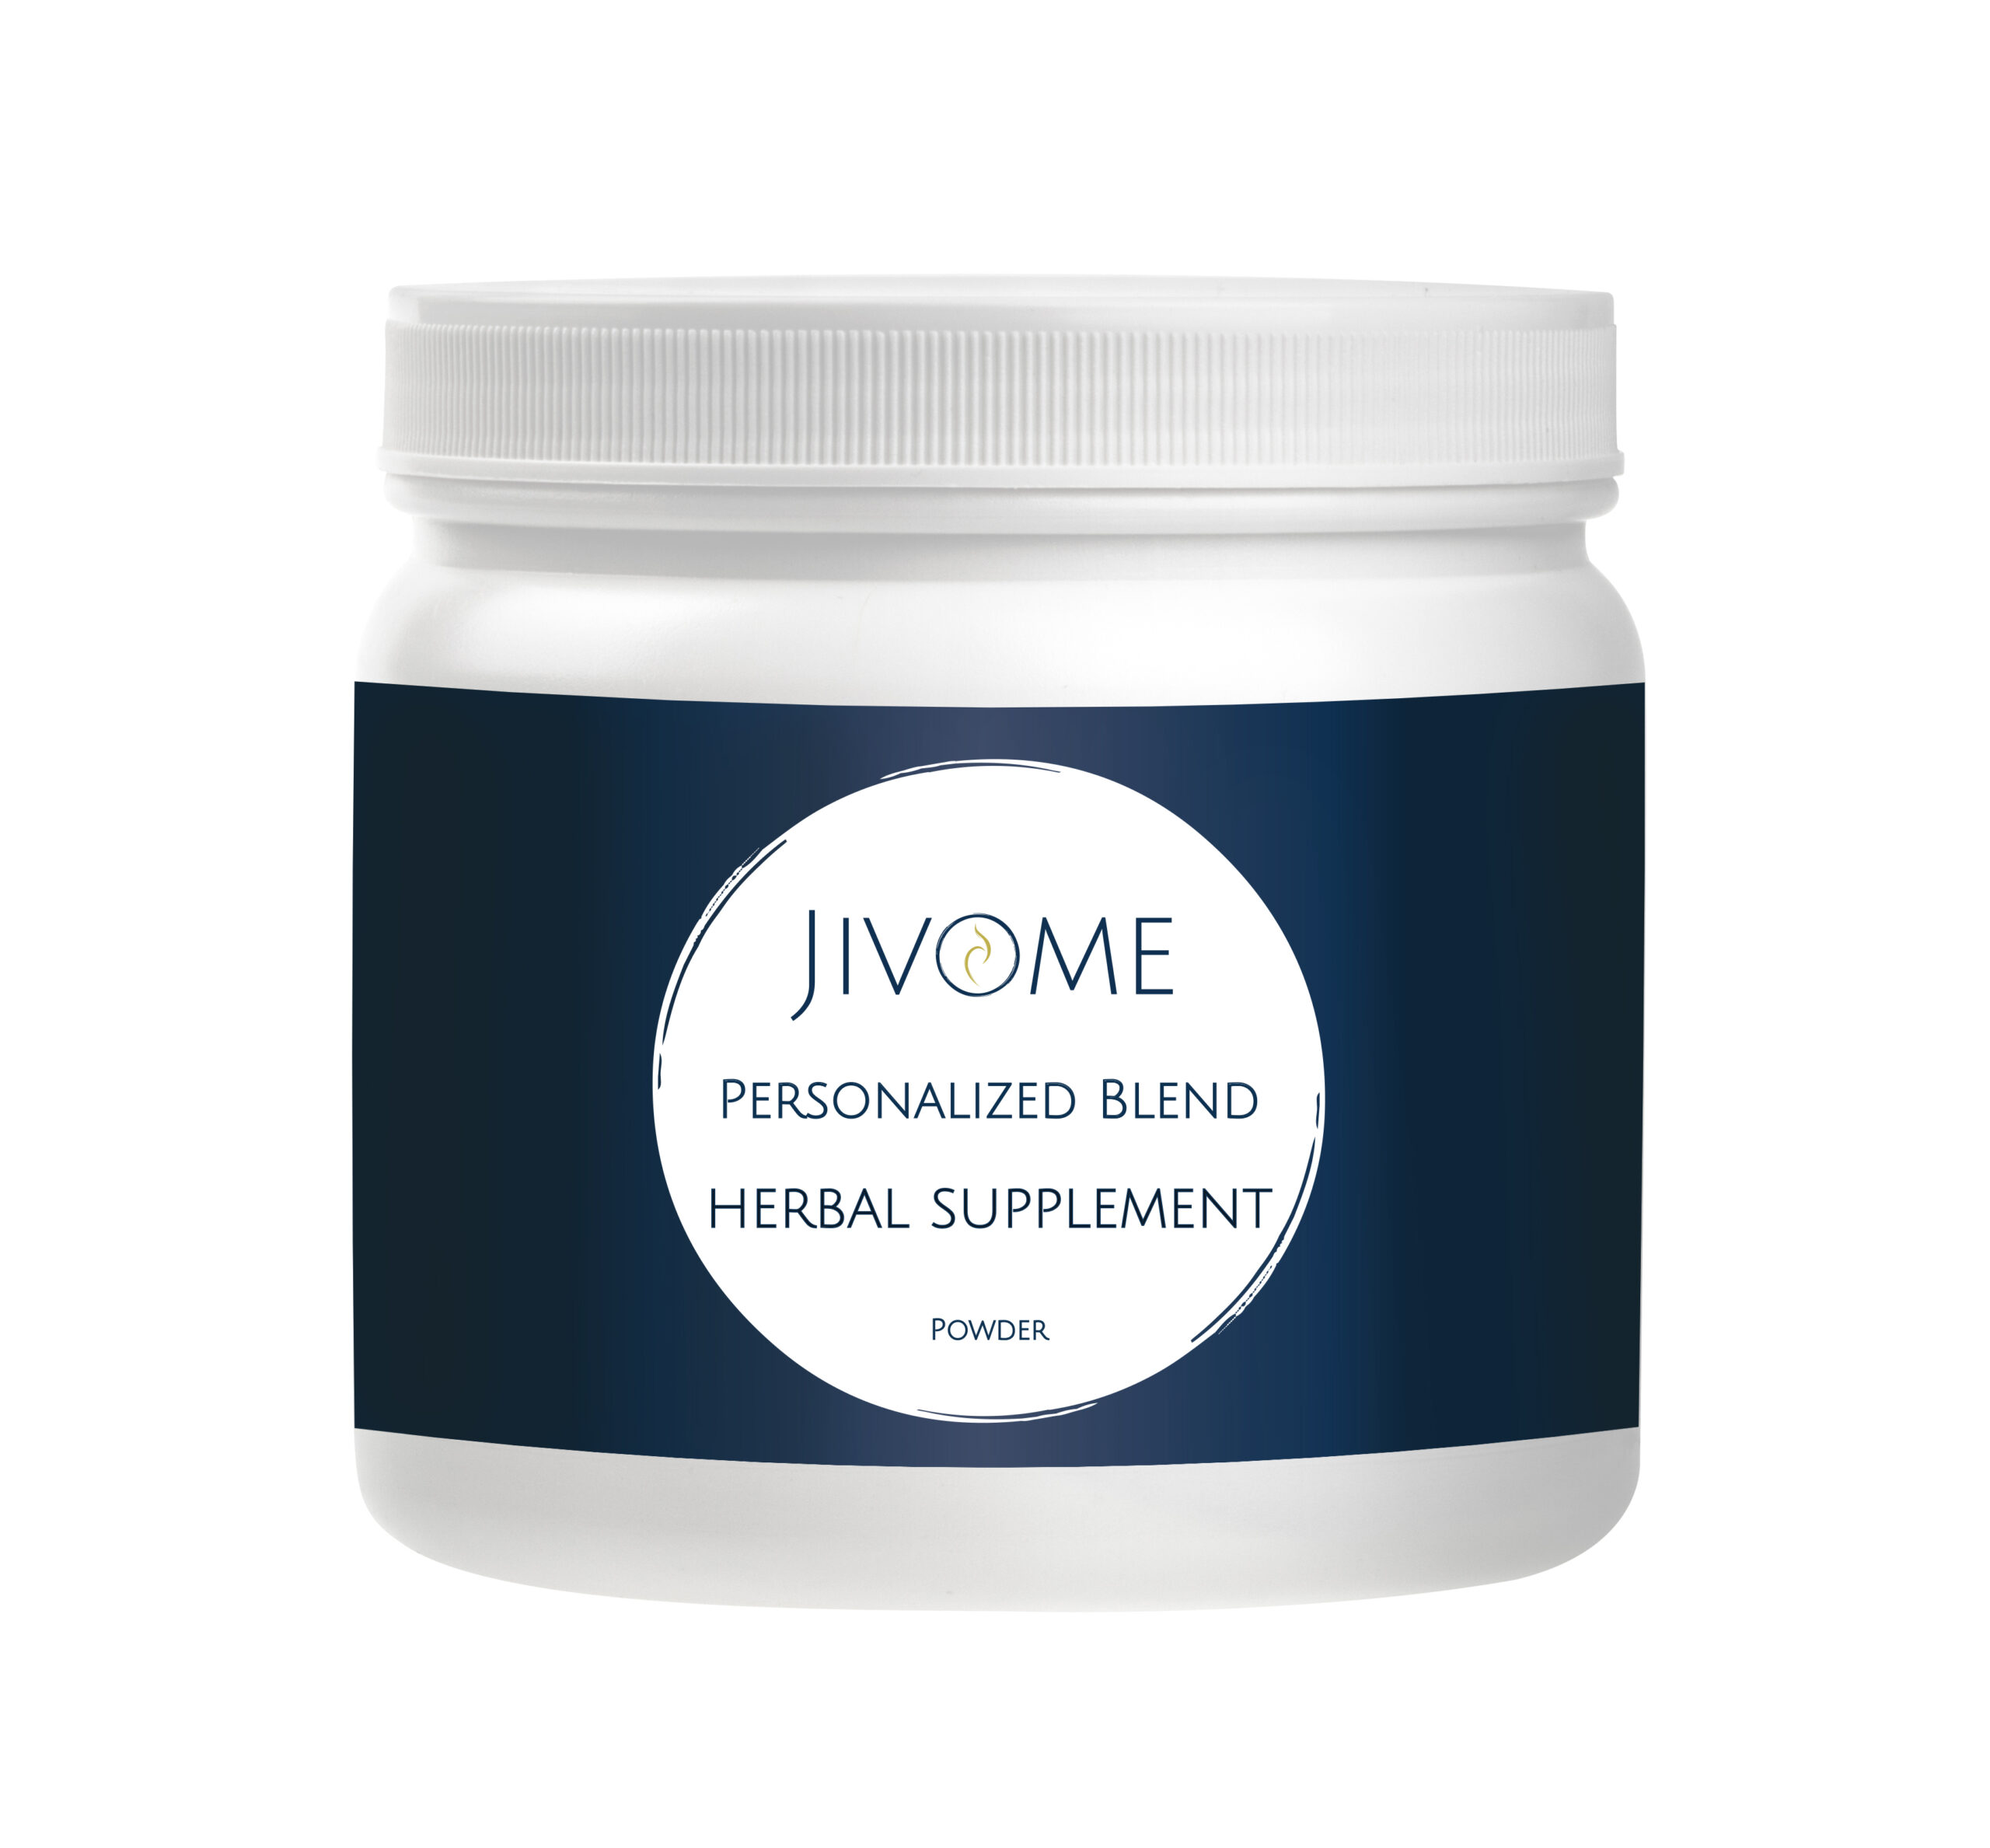 personalized-blend-herbal-supplement-powder